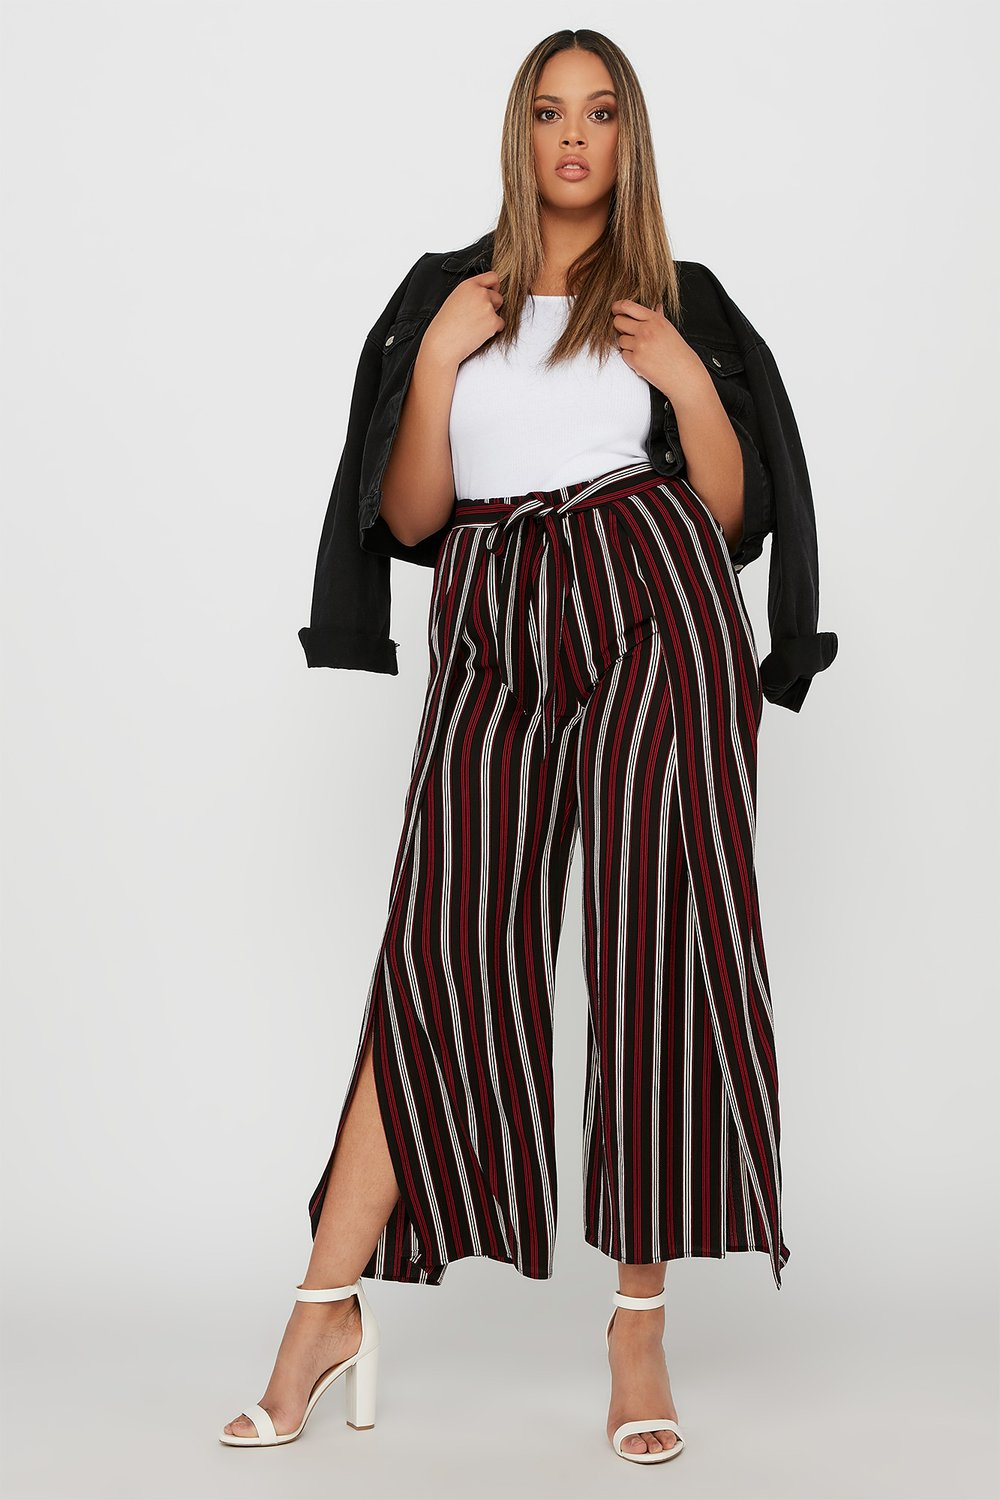 f4214e5f358 The Inclusivity of Plus-Sizes in Retailers and Brands. plus-size clothing